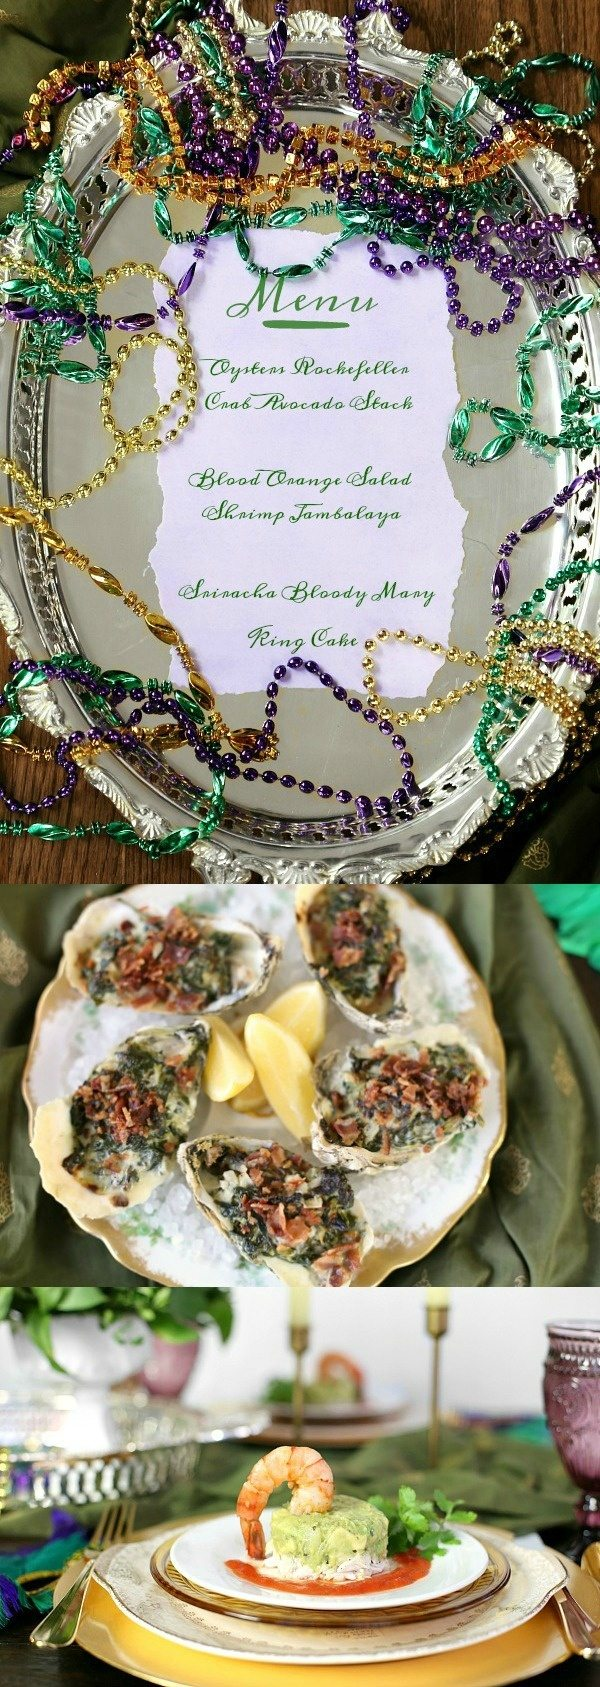 Mardi Gras Inspired Dinner Party Menu Recipe Girl